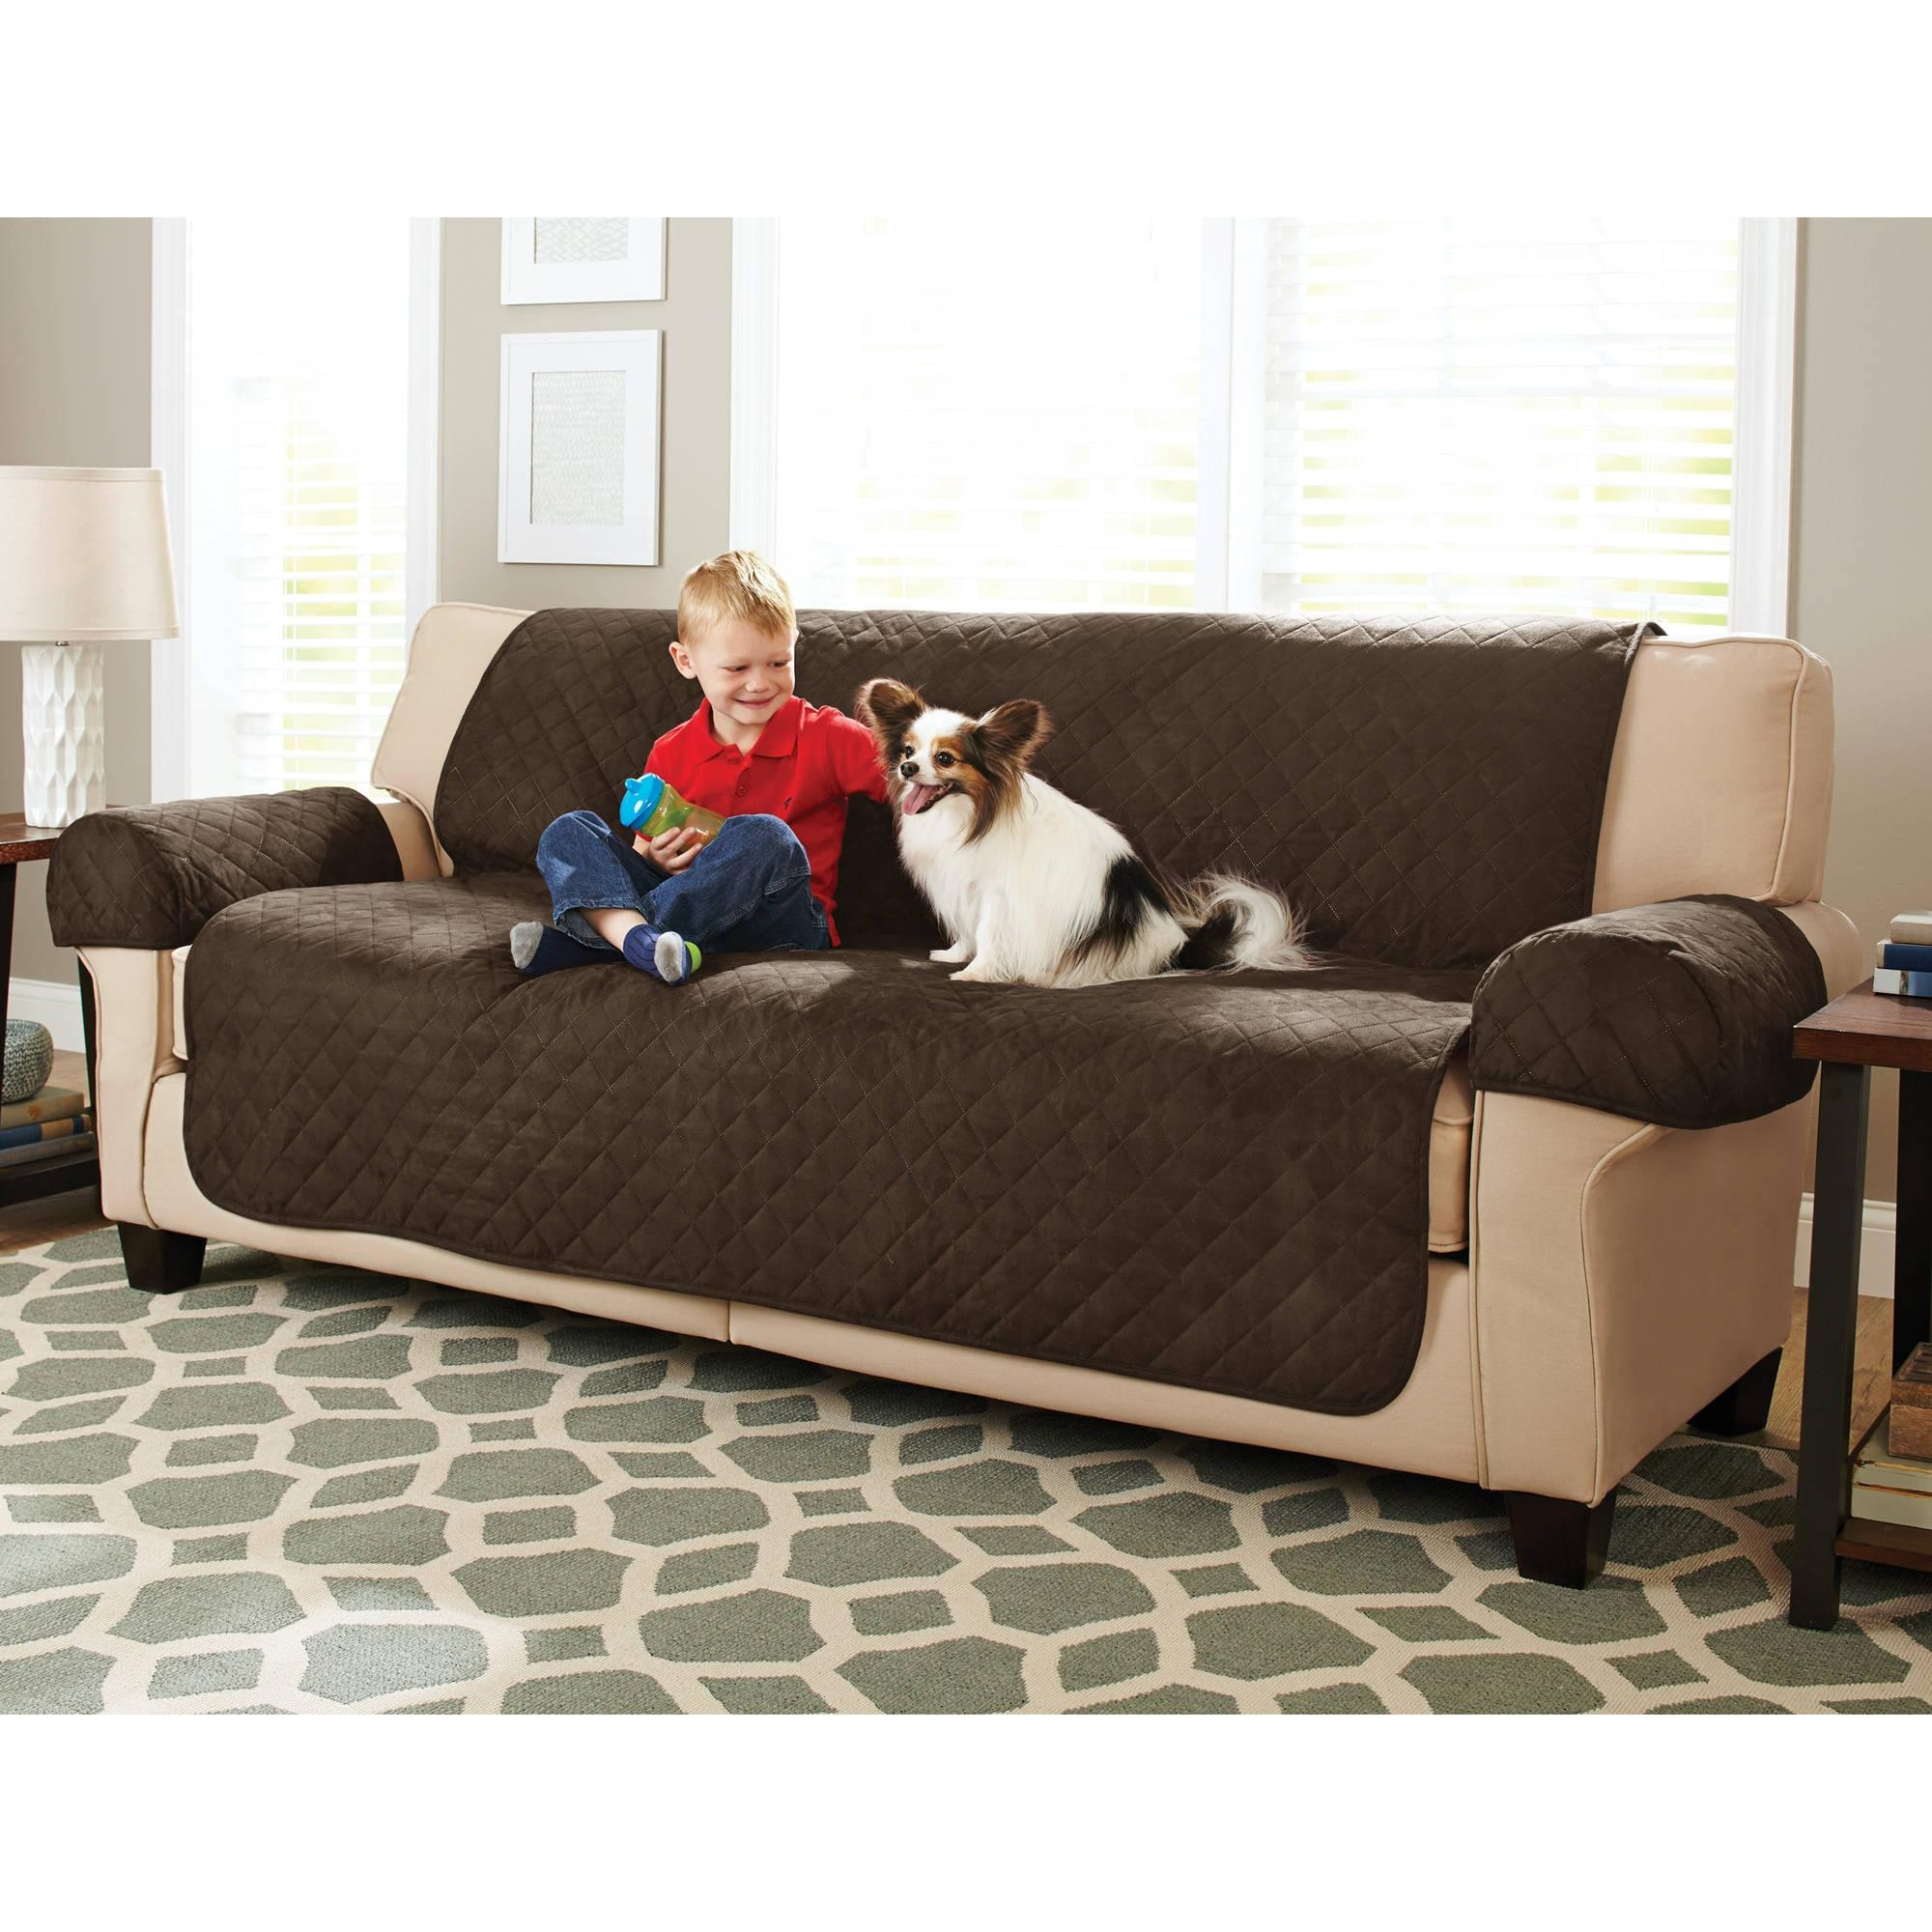 Better Homes And Gardens Waterproof Non Slip Faux Suede Pet Pertaining To Covers For Sofas And Chairs (View 12 of 20)